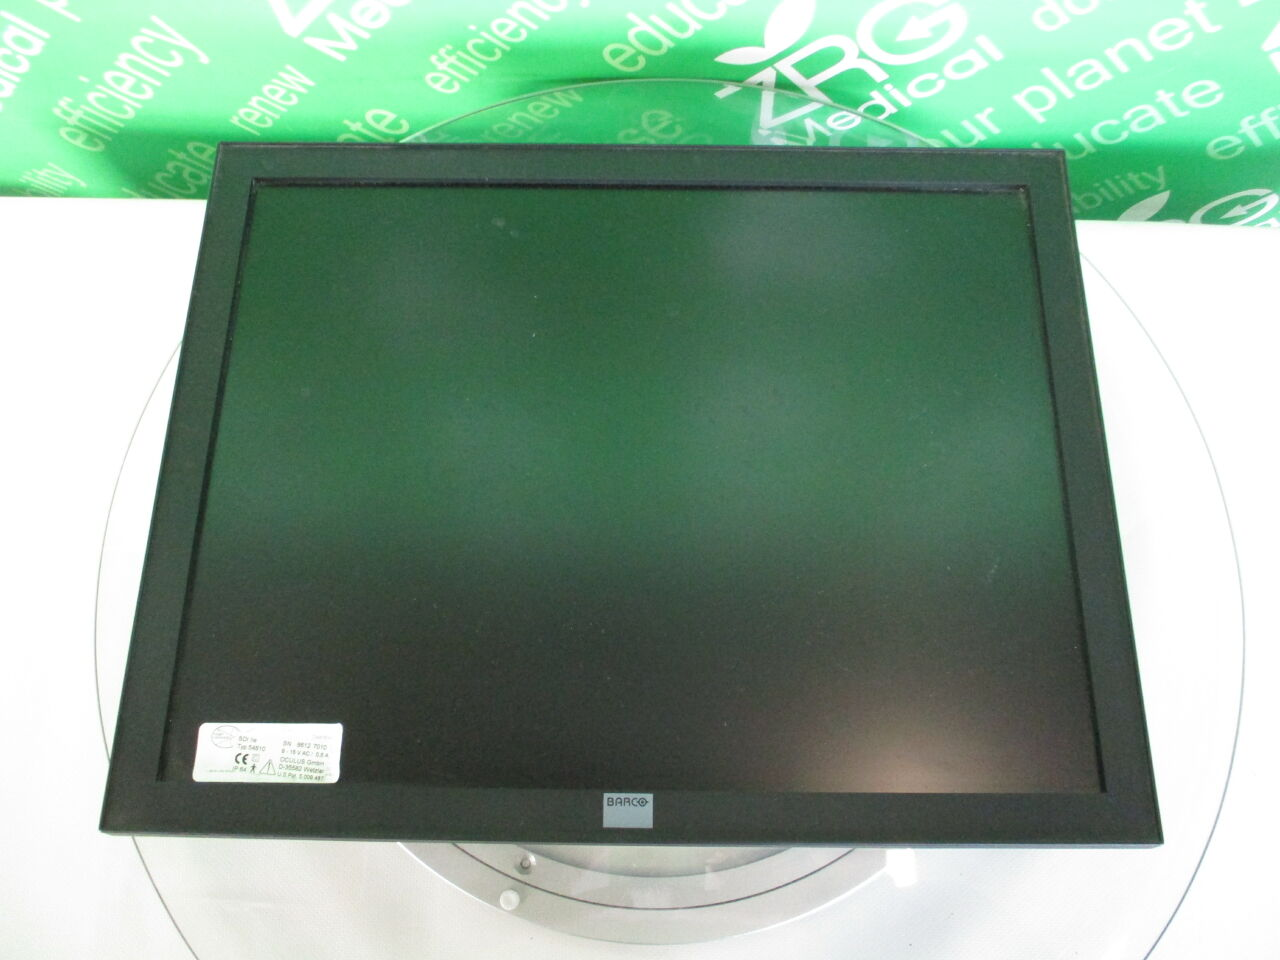 BARCO LCD  Display Monitor